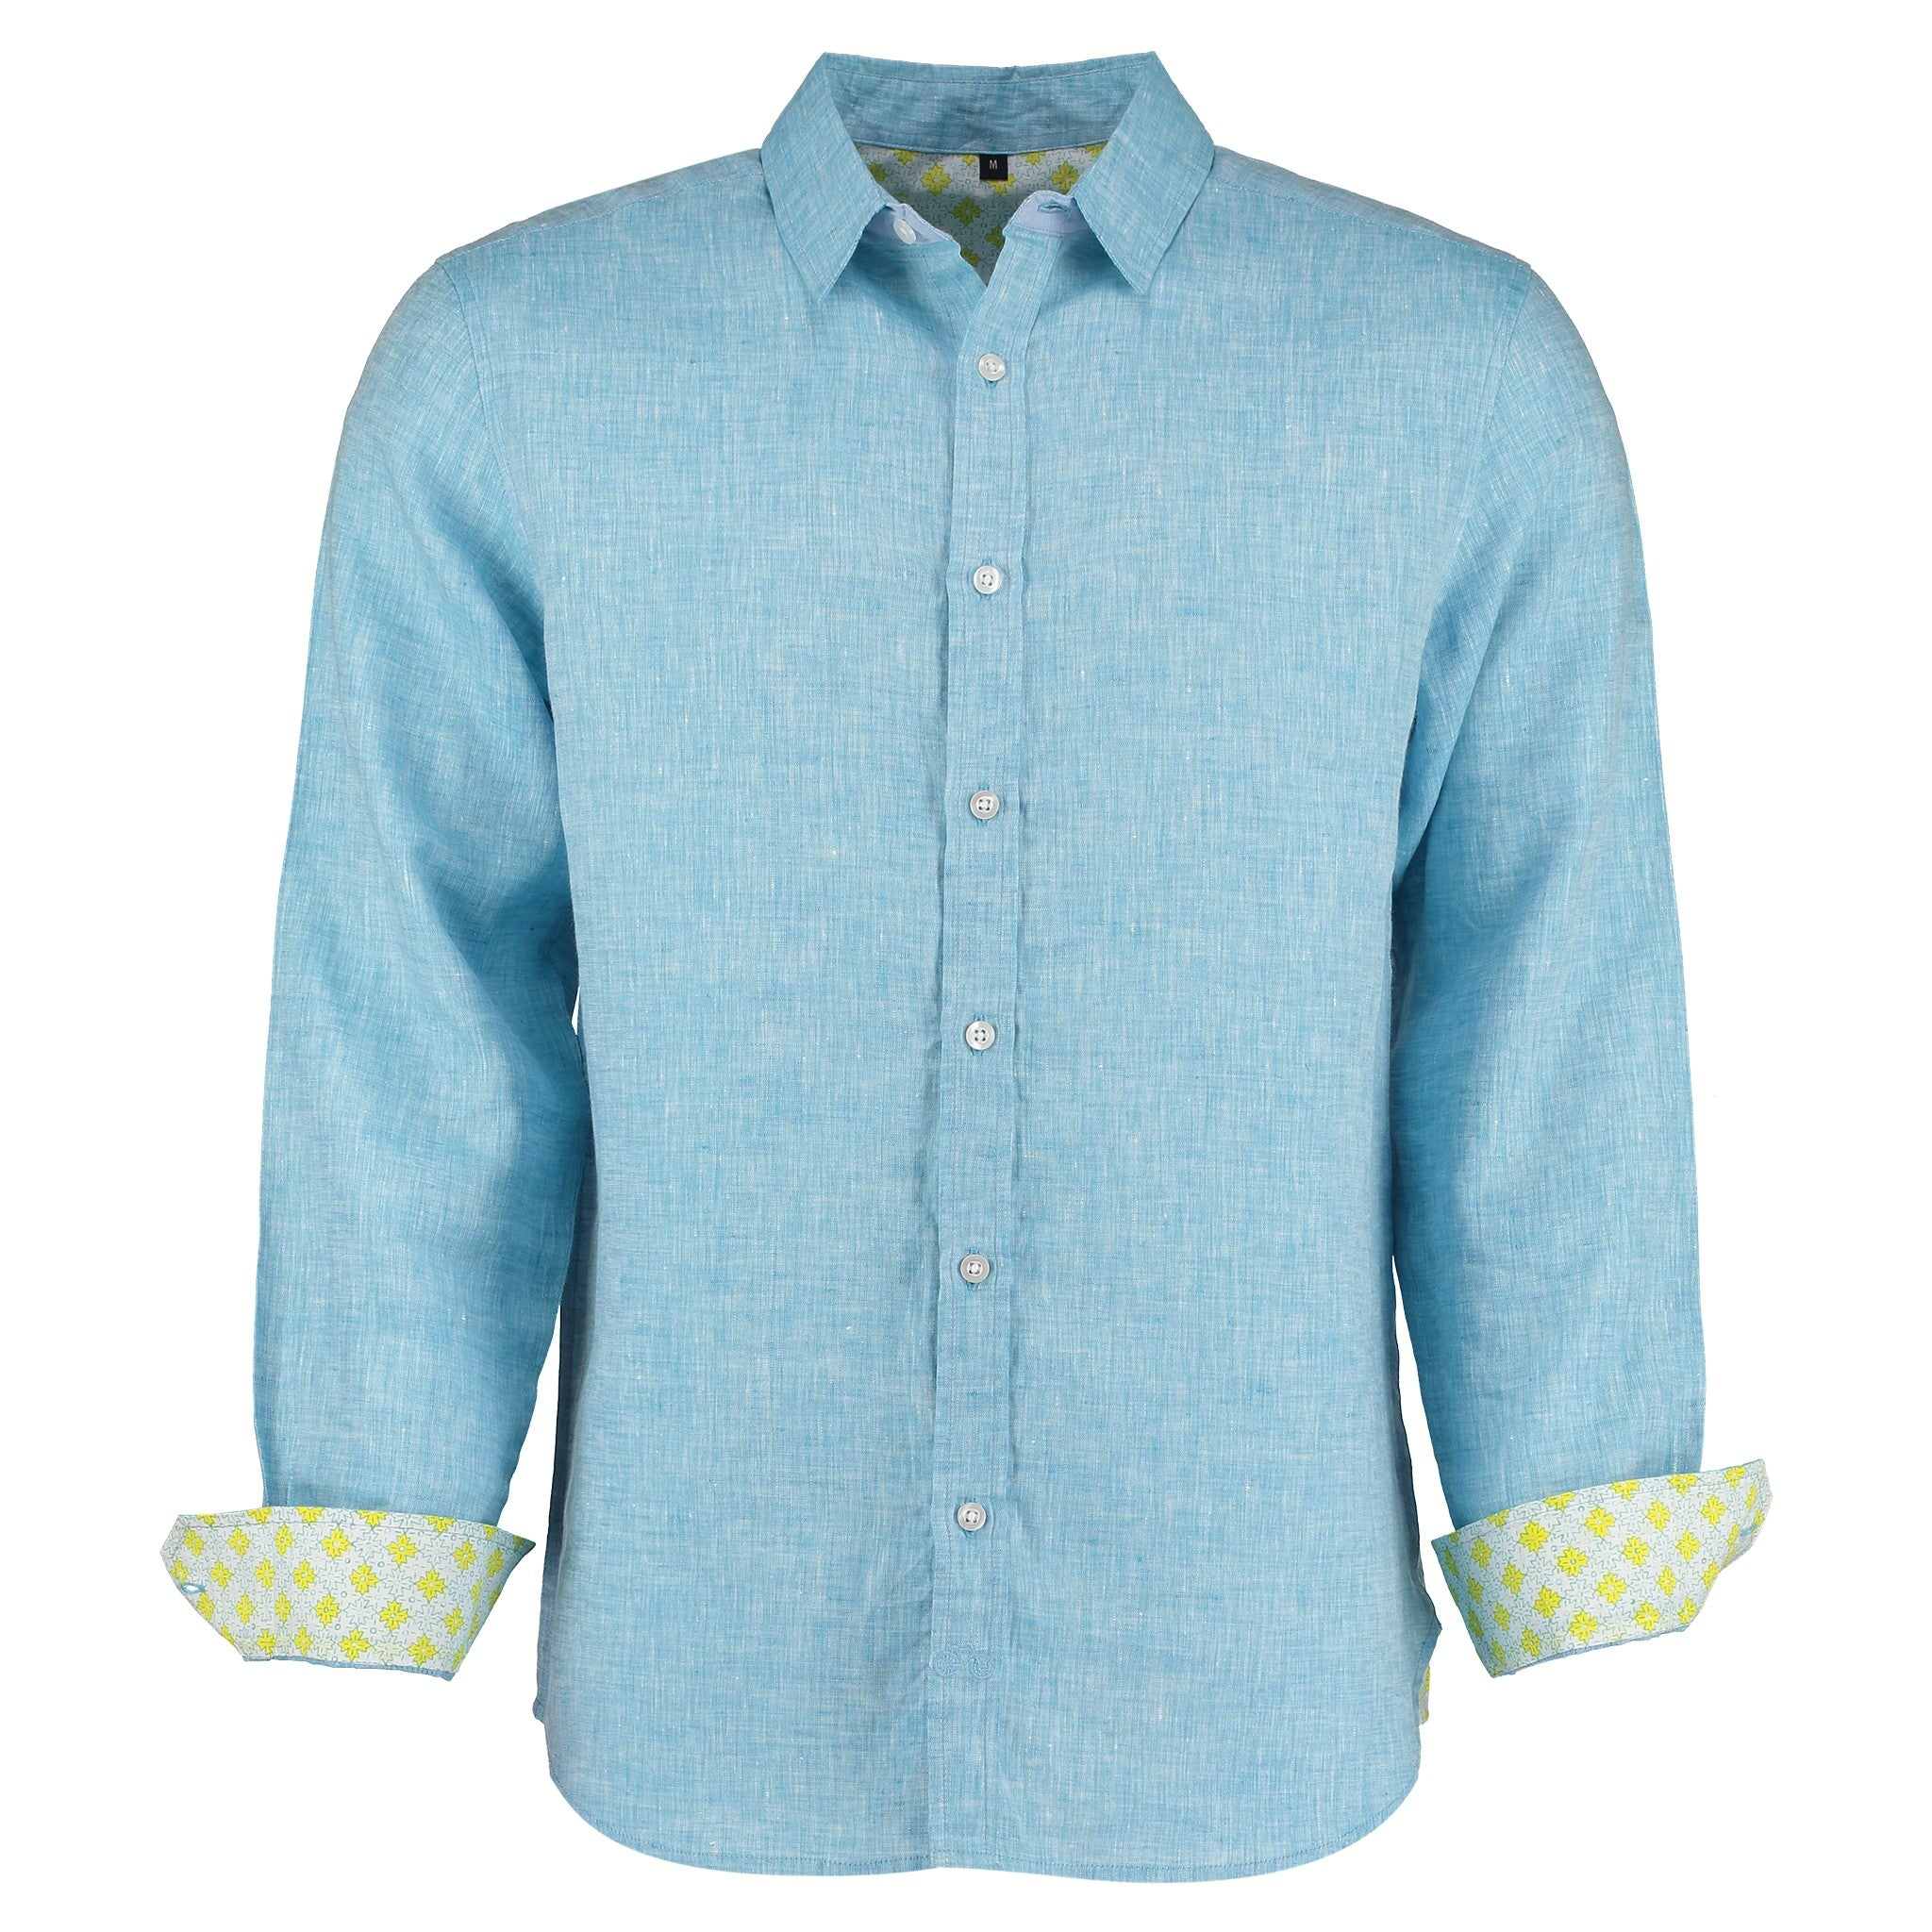 Karnataka Light Blue Linen Shirt by Tobias Clothing on OOSTOR.com